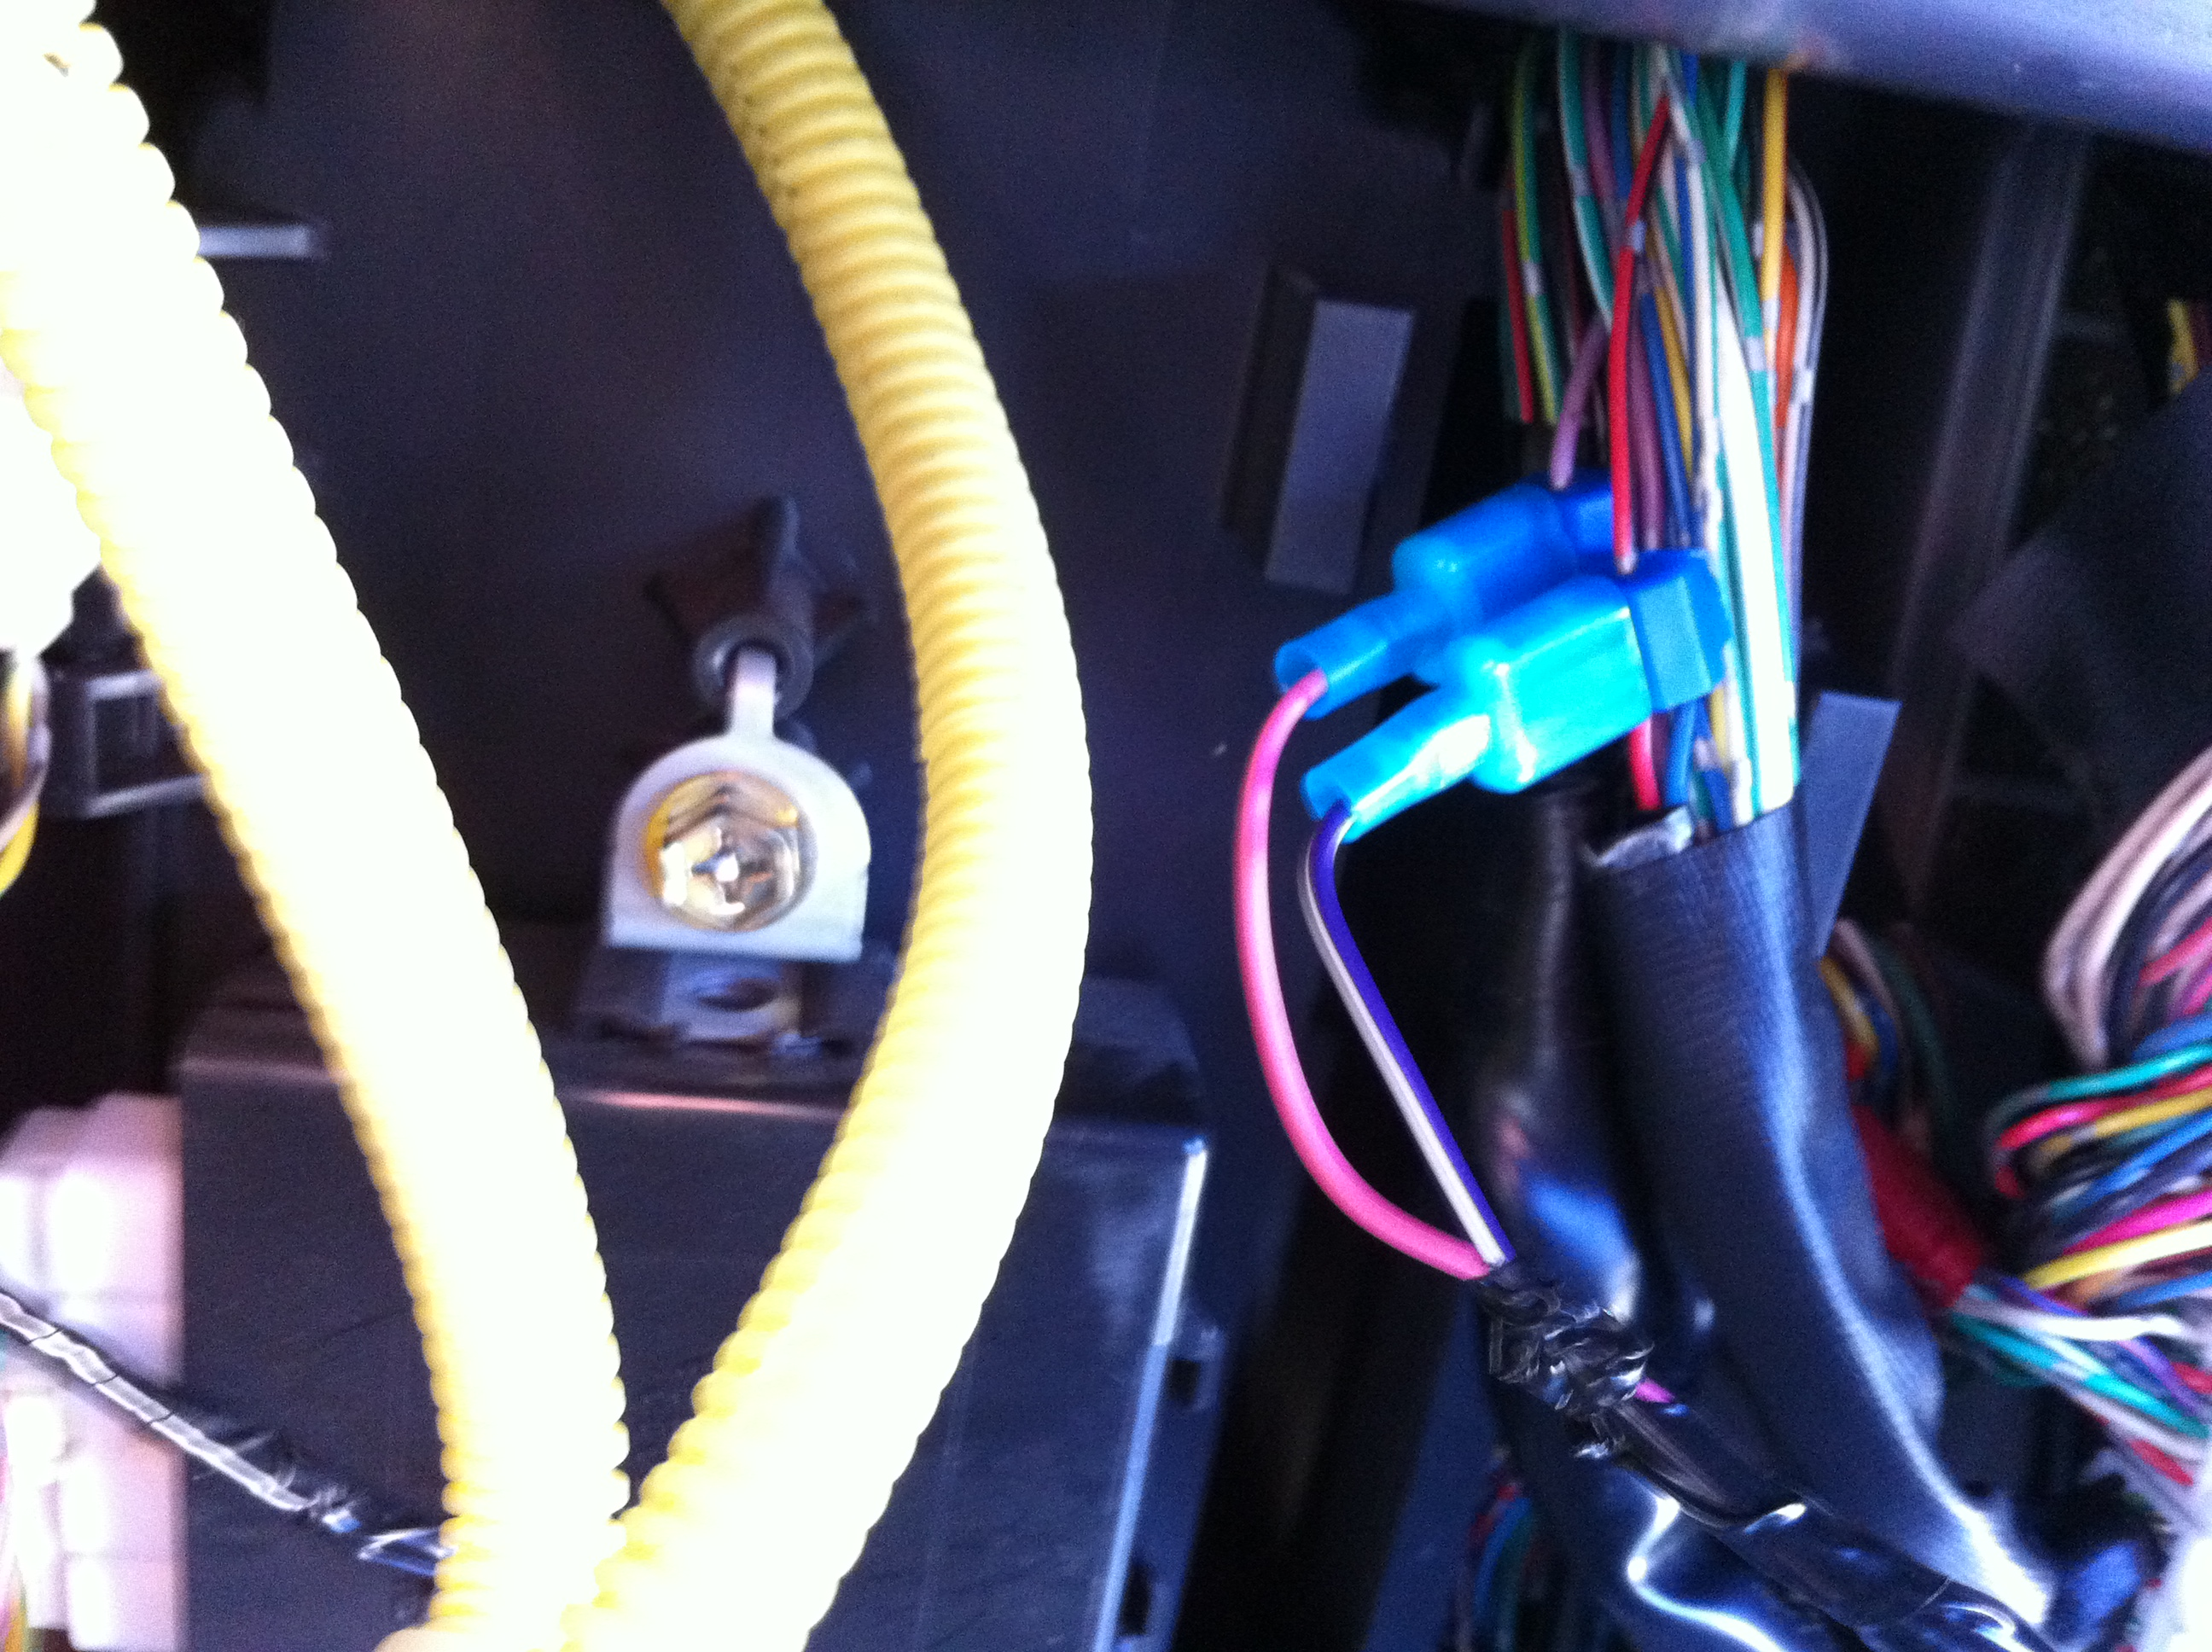 Radio Wiring Diagram On Delco Radio Speaker Wiring 2012 Express